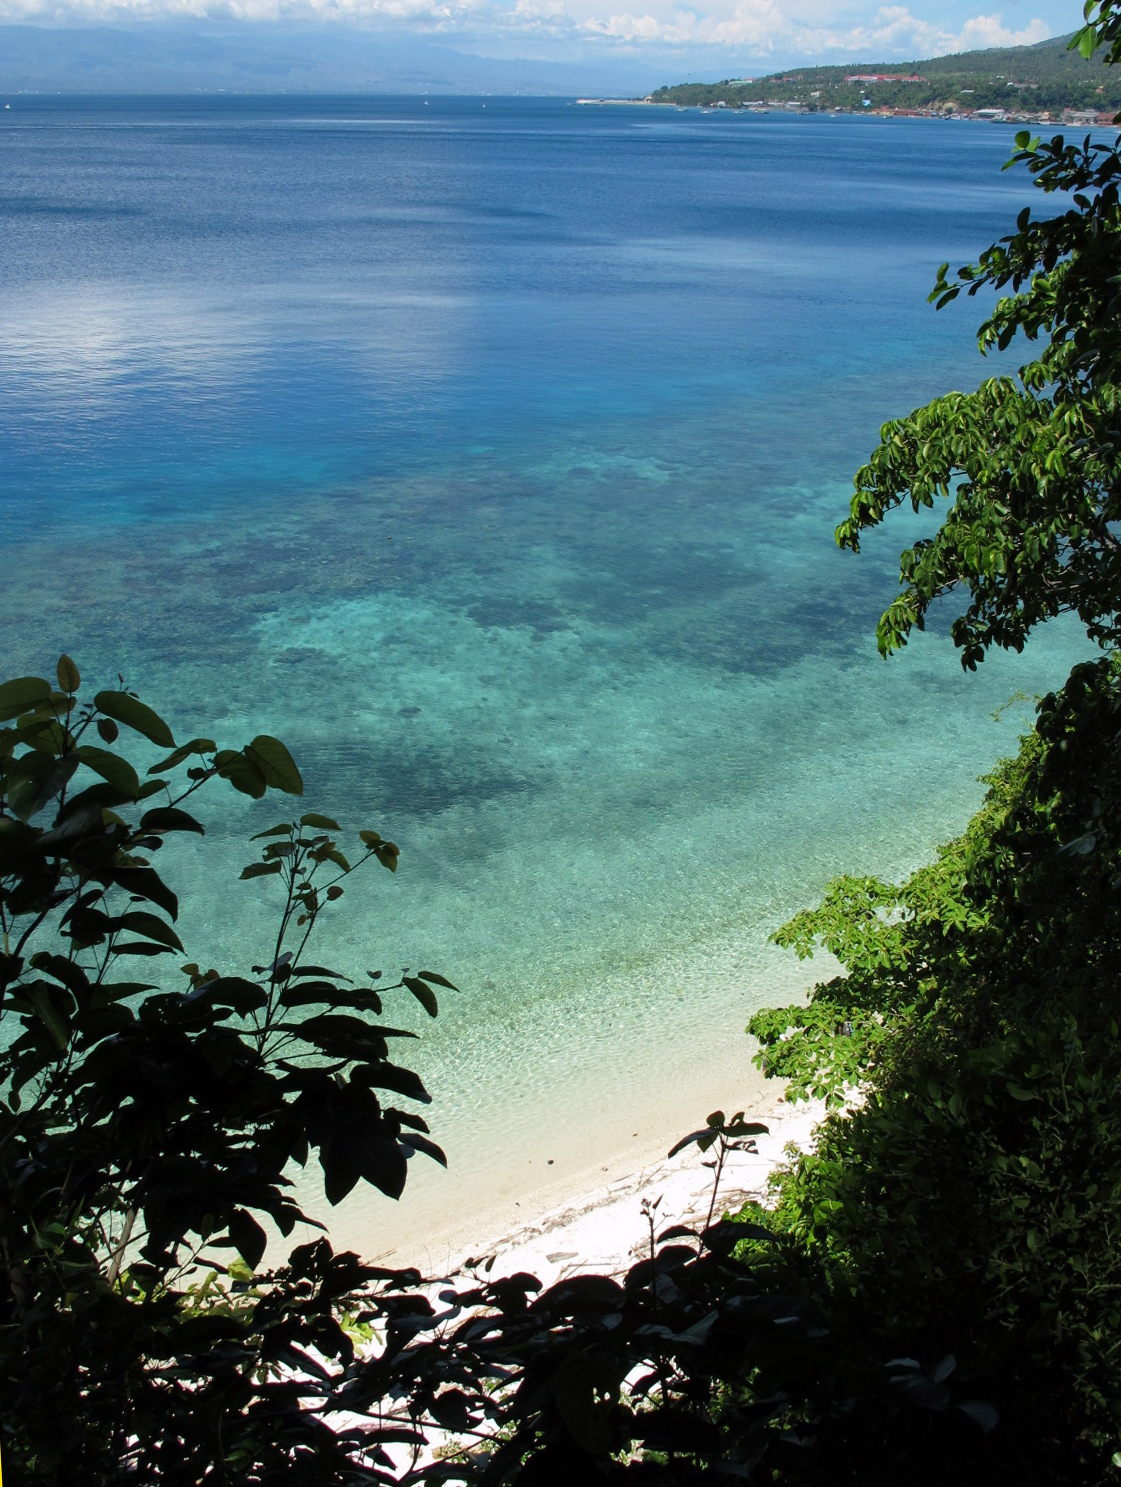 A tropical reef in Donggala near Palu in Indonesia.